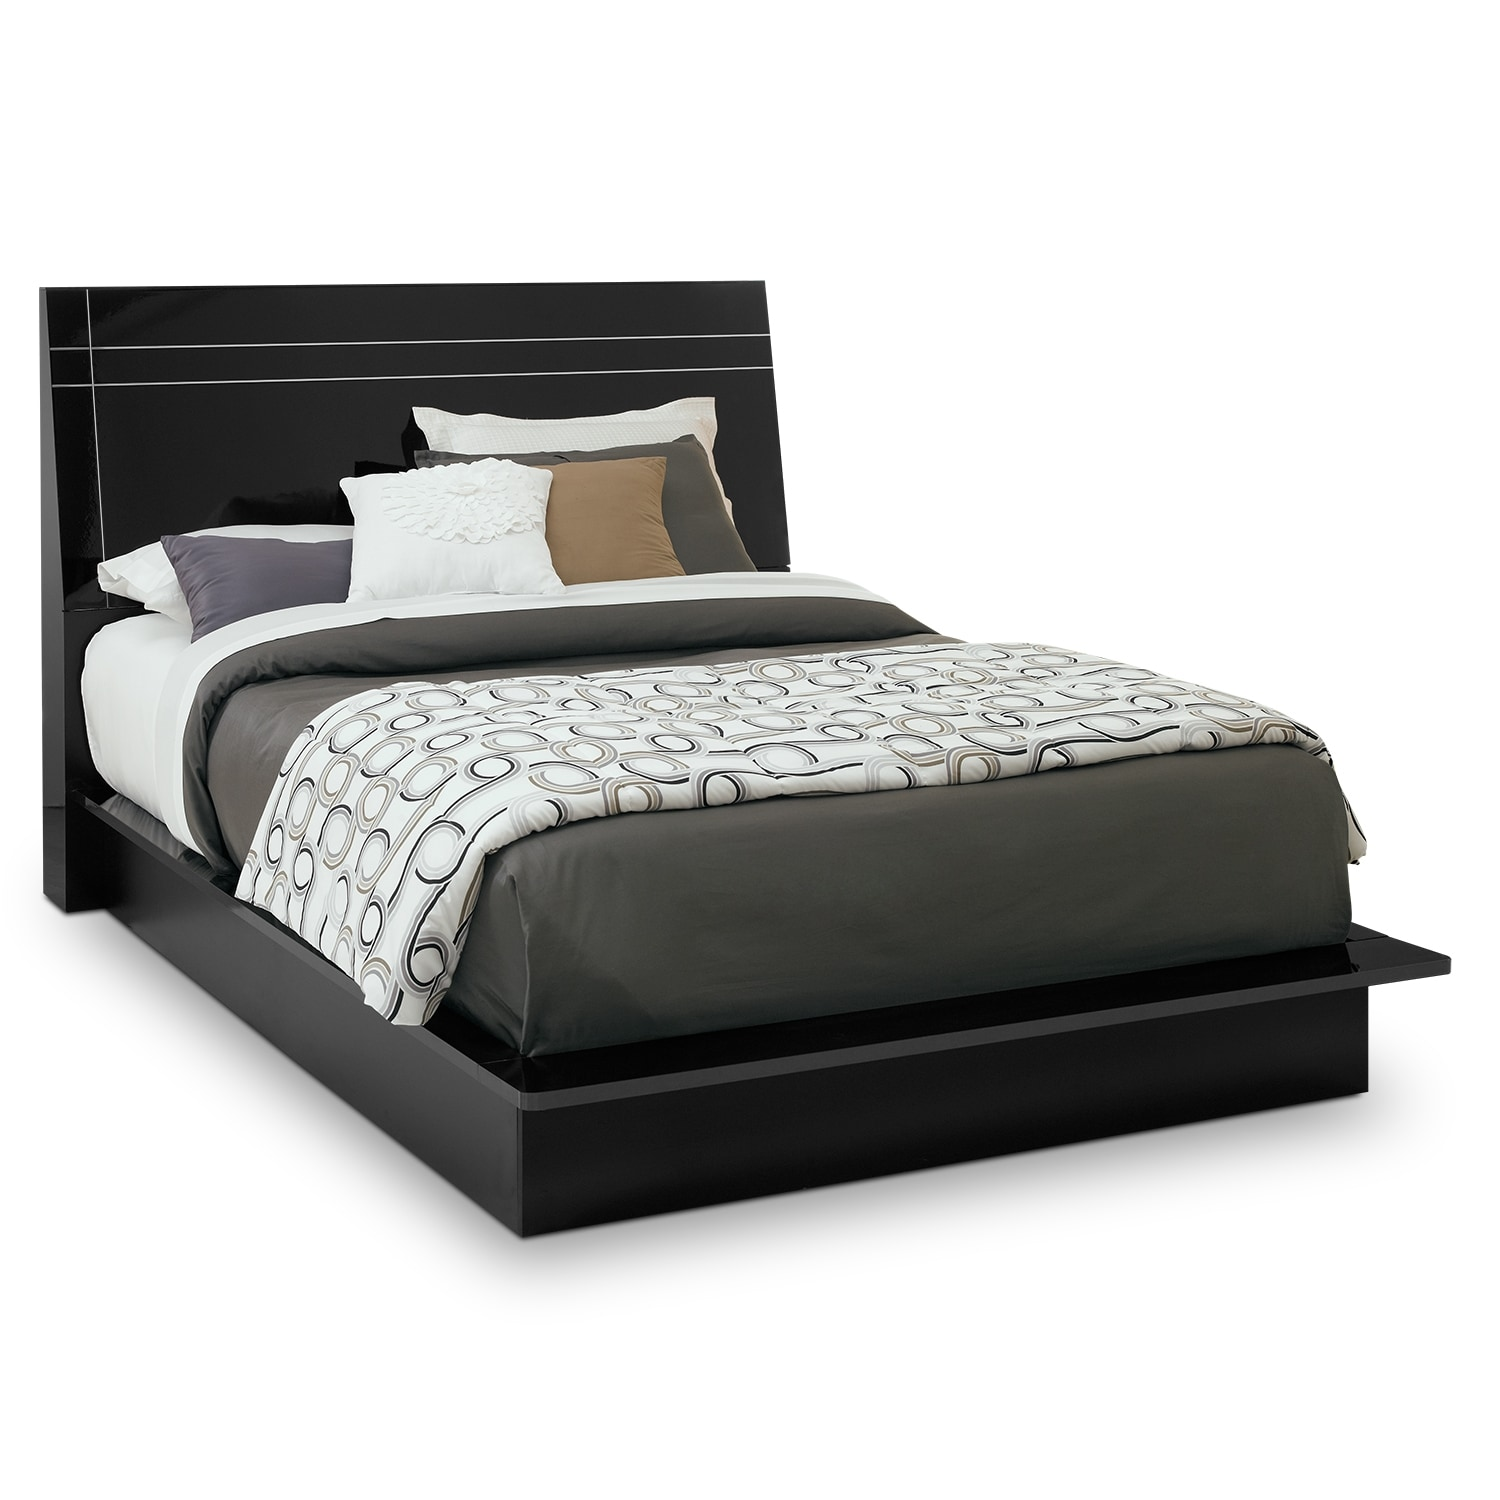 Dimora Black II Queen Bed Value City Furniture